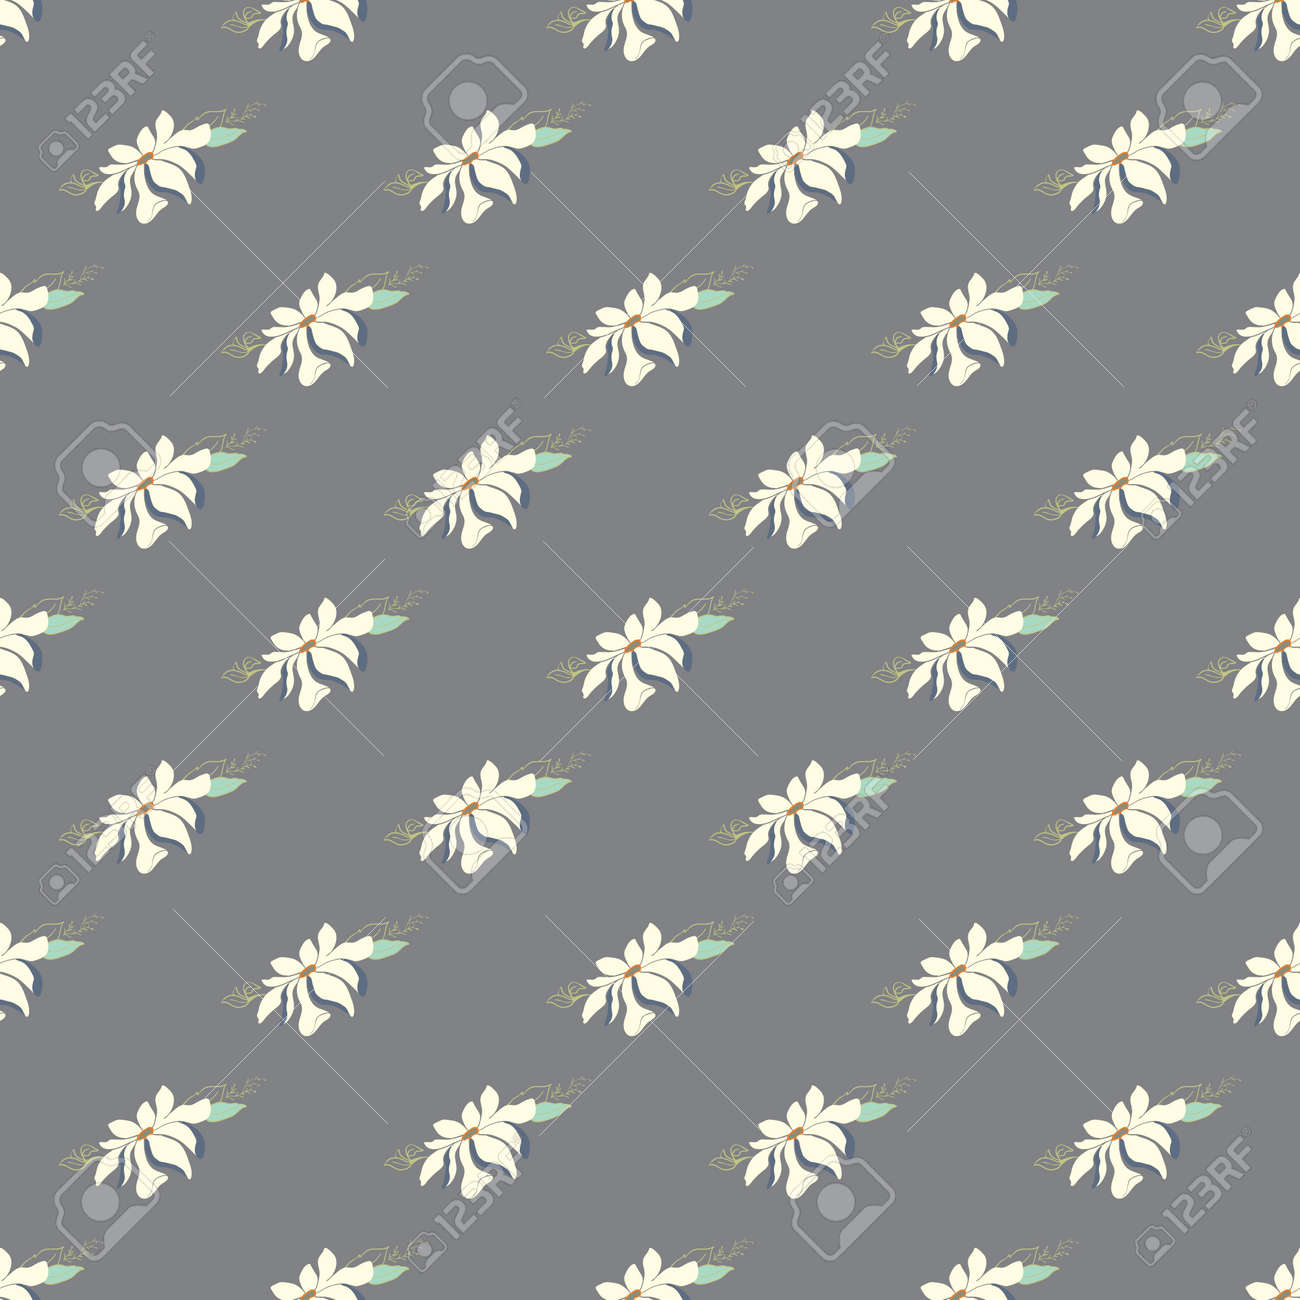 Seamless vector magnolia flower pattern. Delicate floral background on a gray background - 168290788